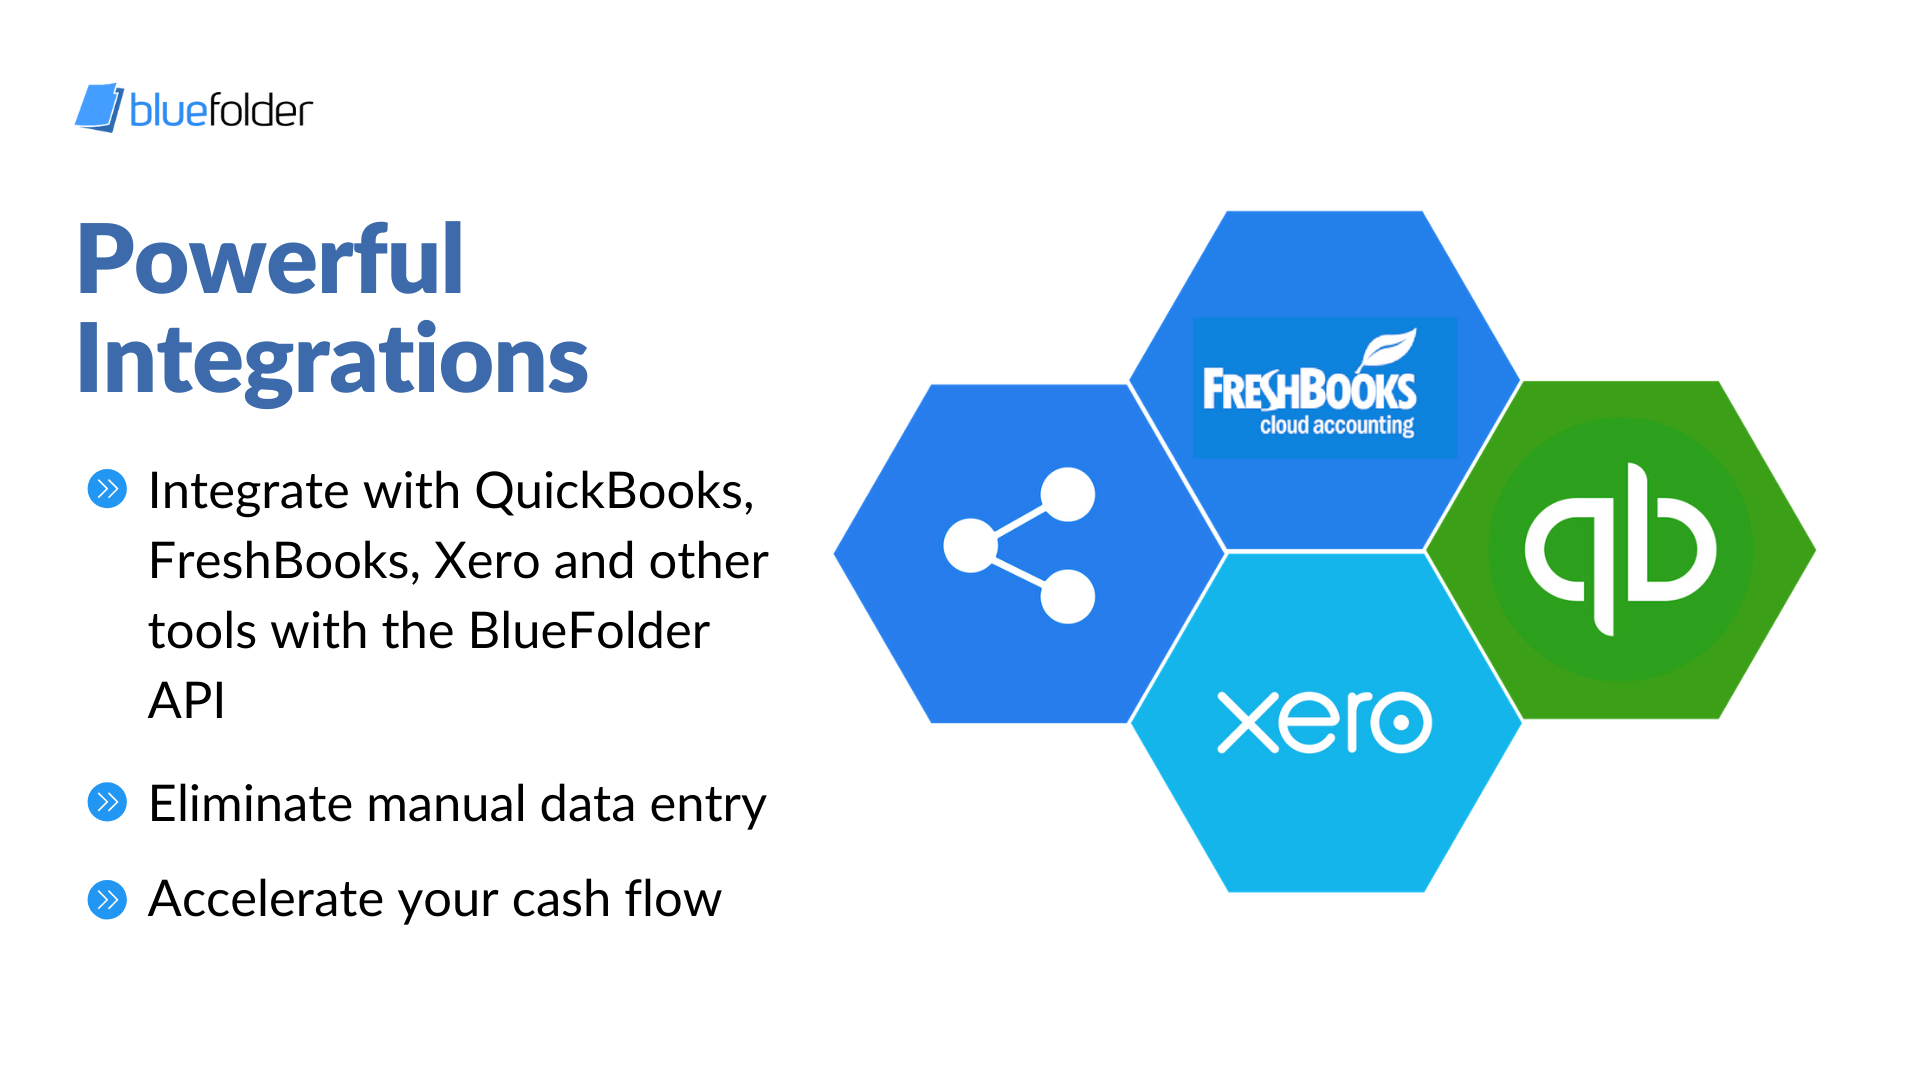 Streamline billing and accelerate your cashflow with QuickBooks, FreshBooks and Xero integrations.